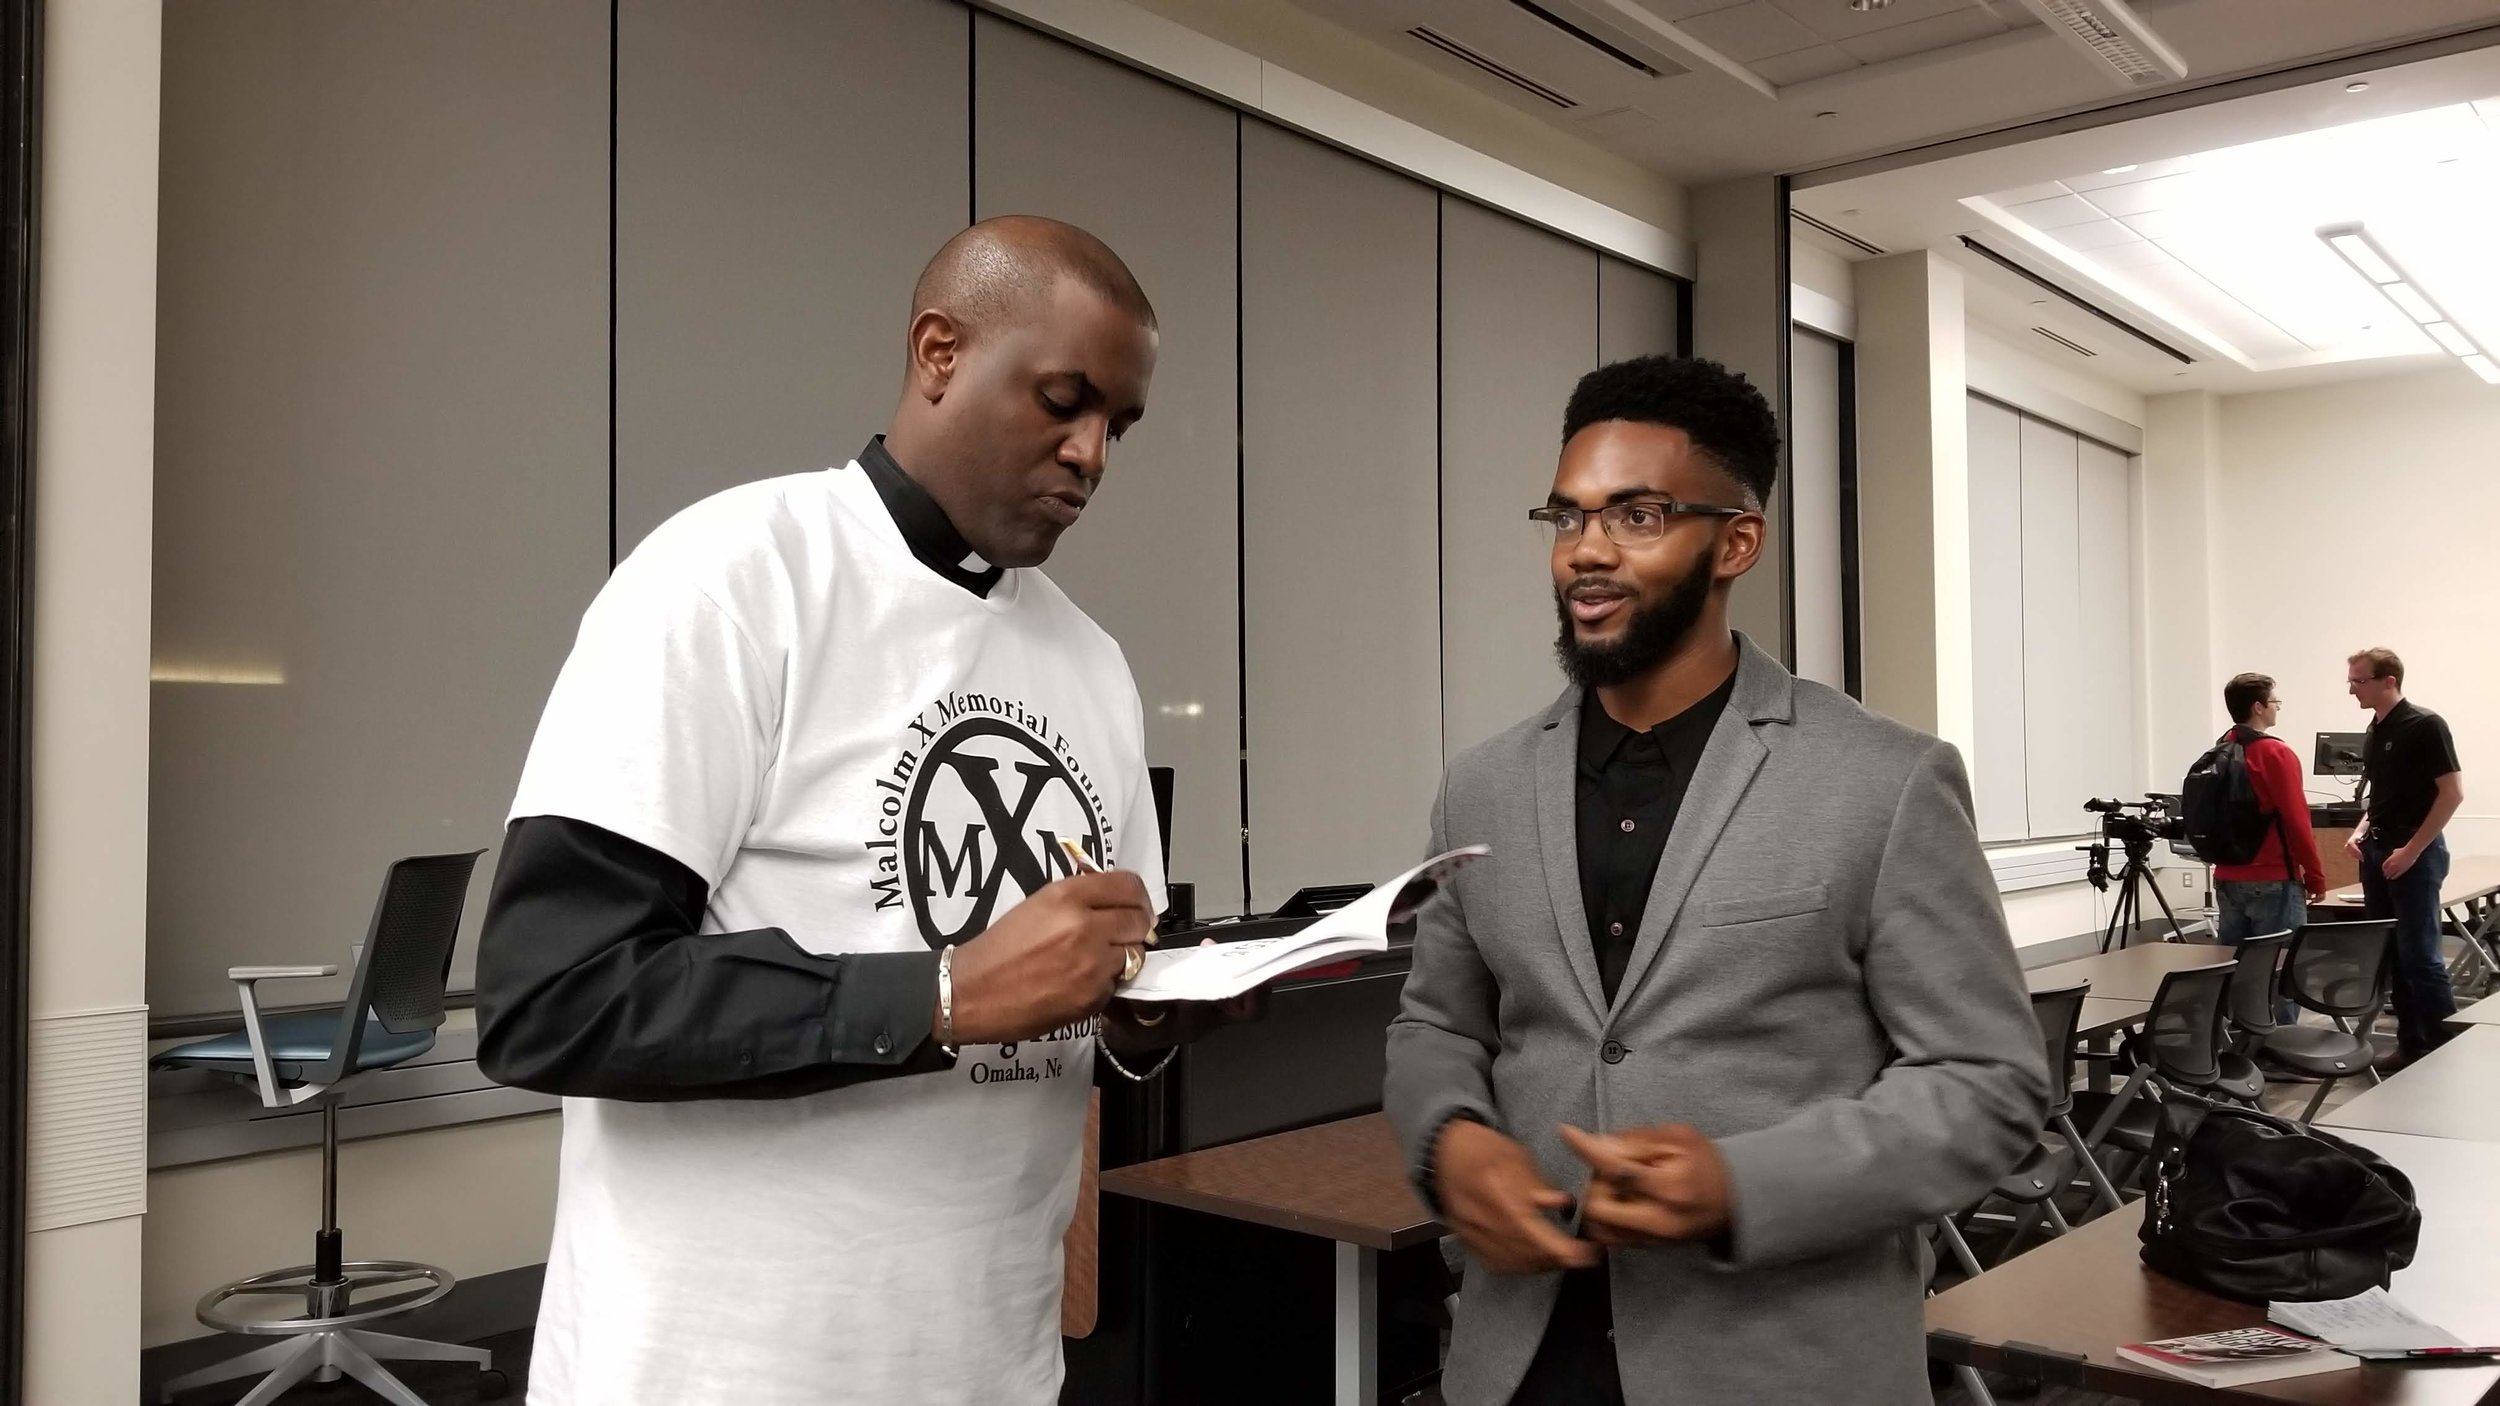 Dr. Rev. Waters and UNO Student Body Vice-President Jabin Moore